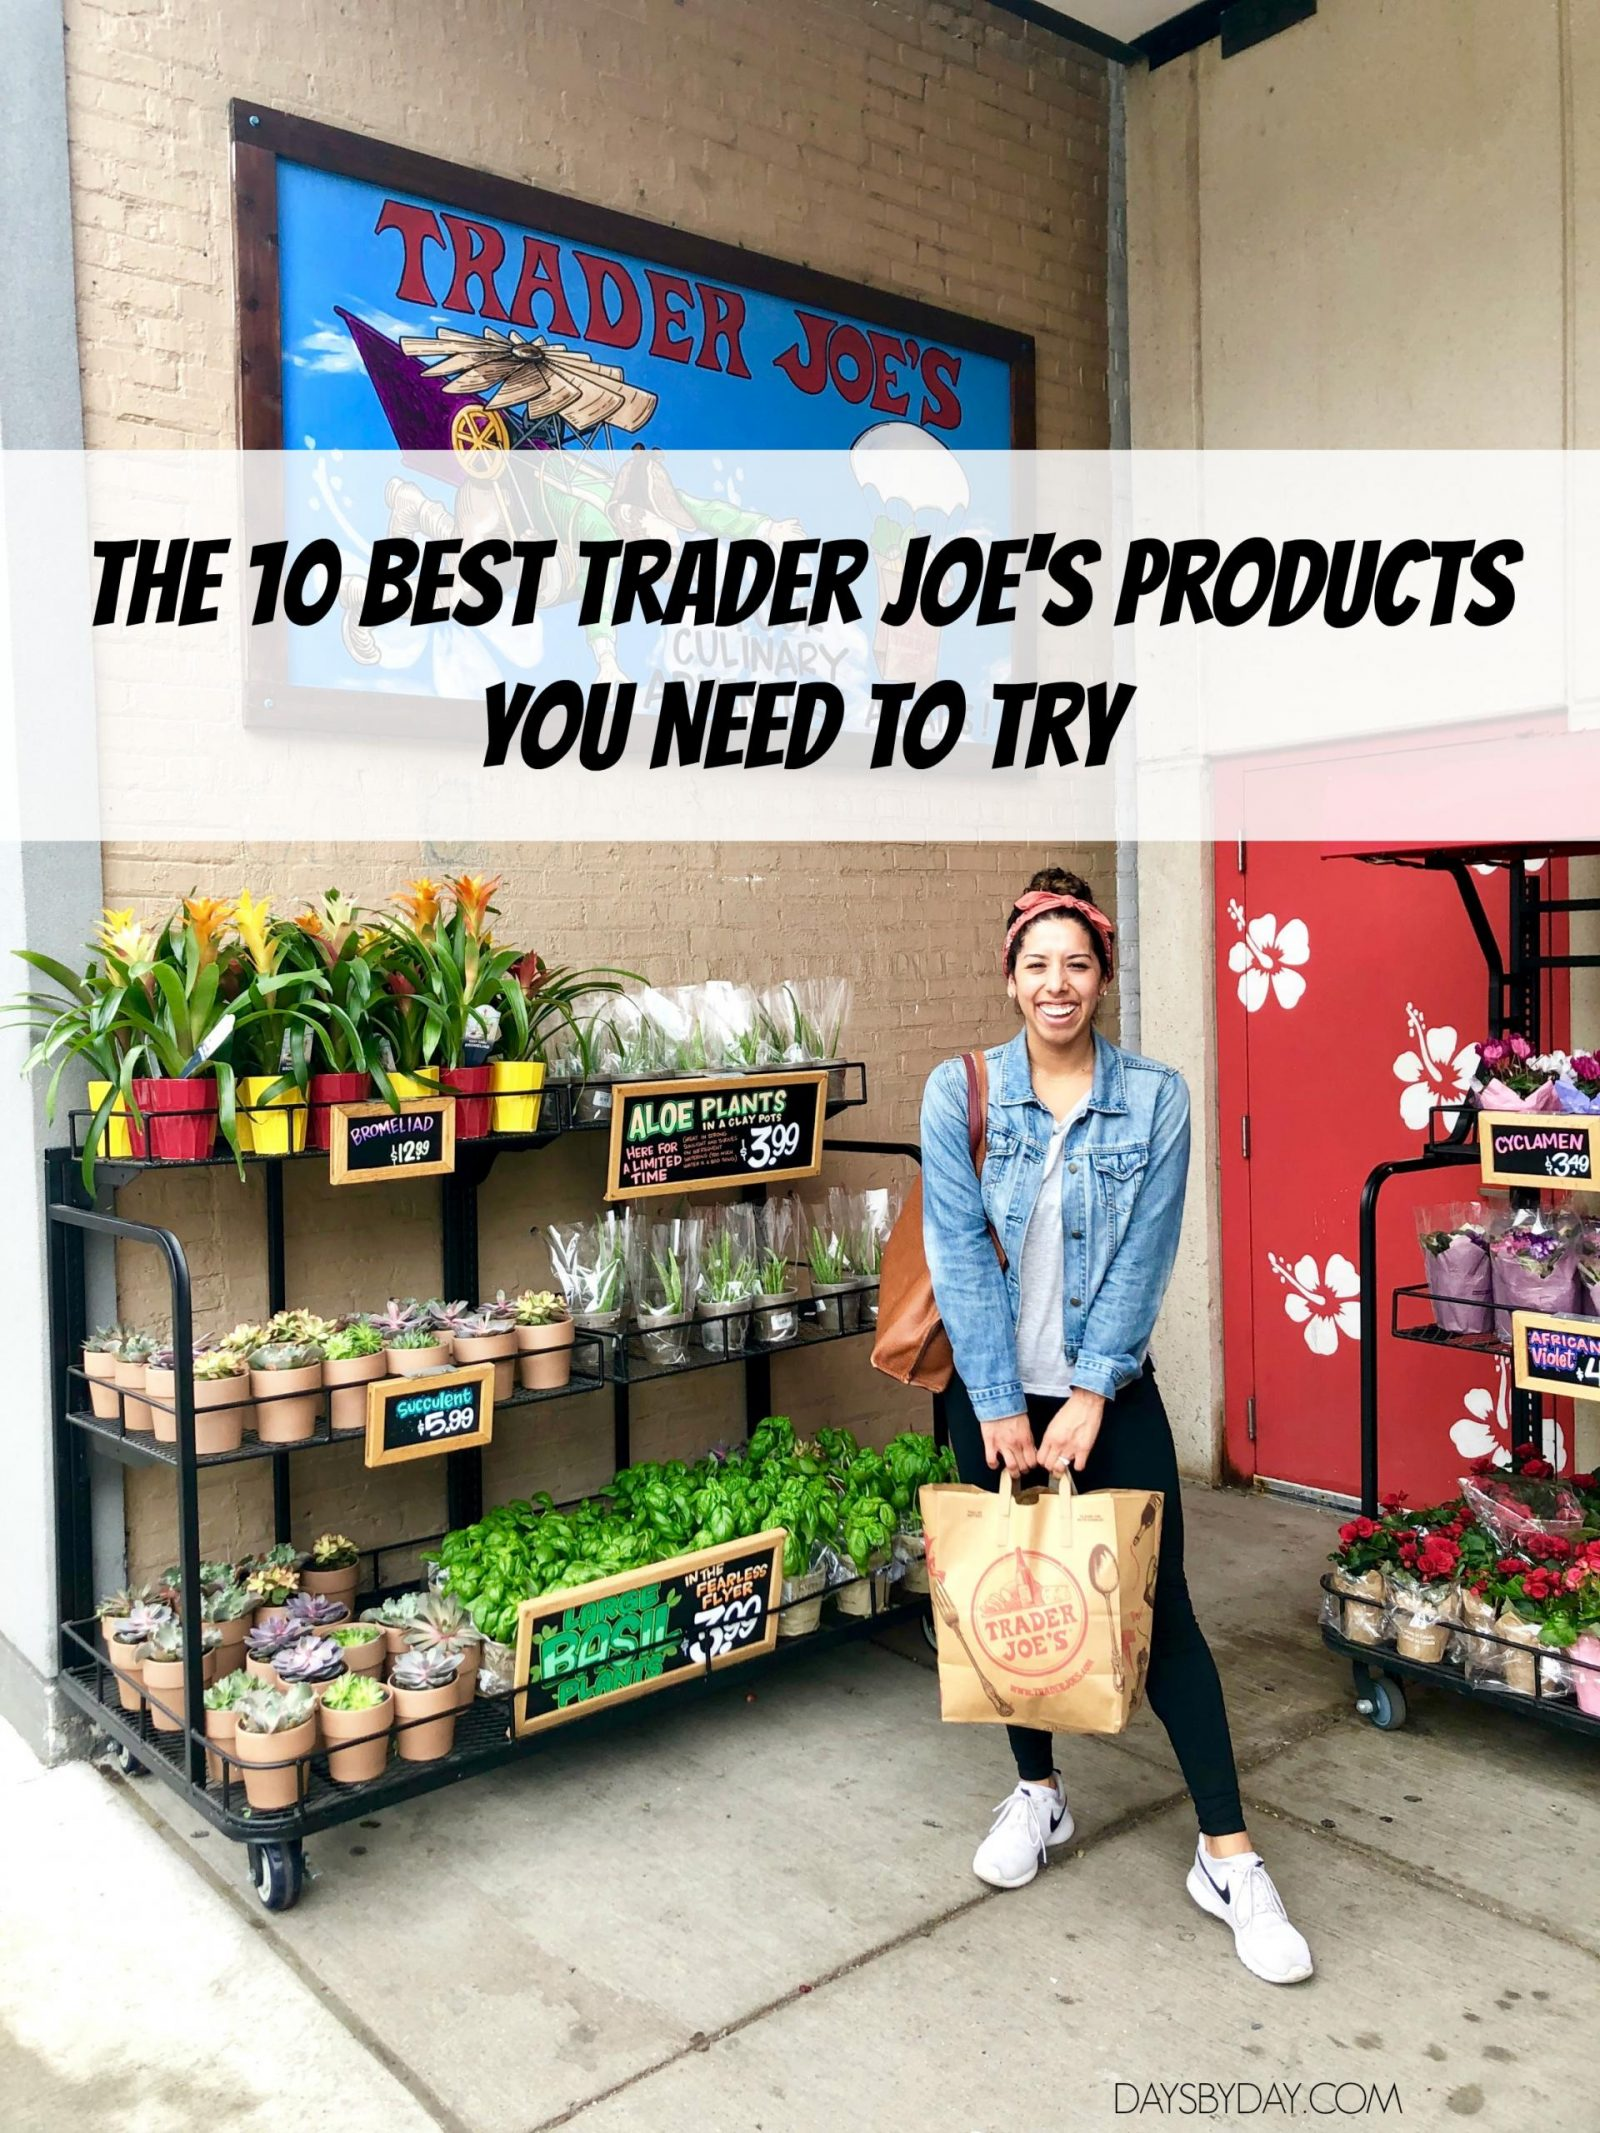 The 10 Best Trader Joe's Products You Need To Try